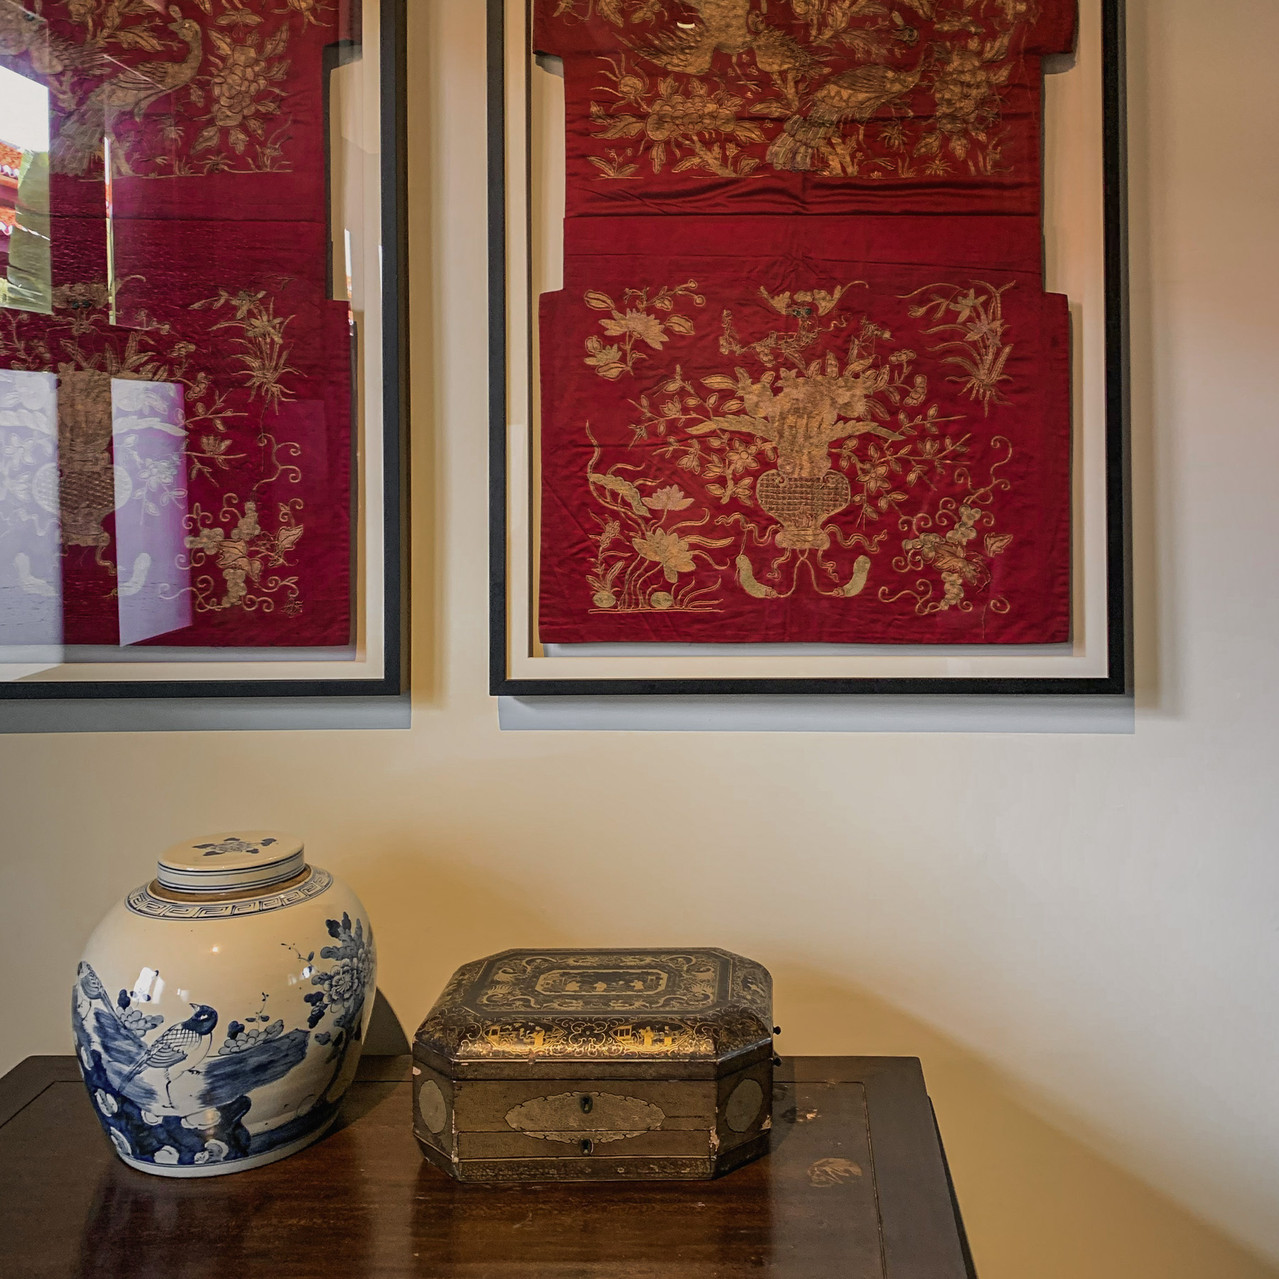 Seven Terraces room decor: Framed embroidered Peranakan chair covers, antique chinoiserie vase and box / RollingBear Travels.